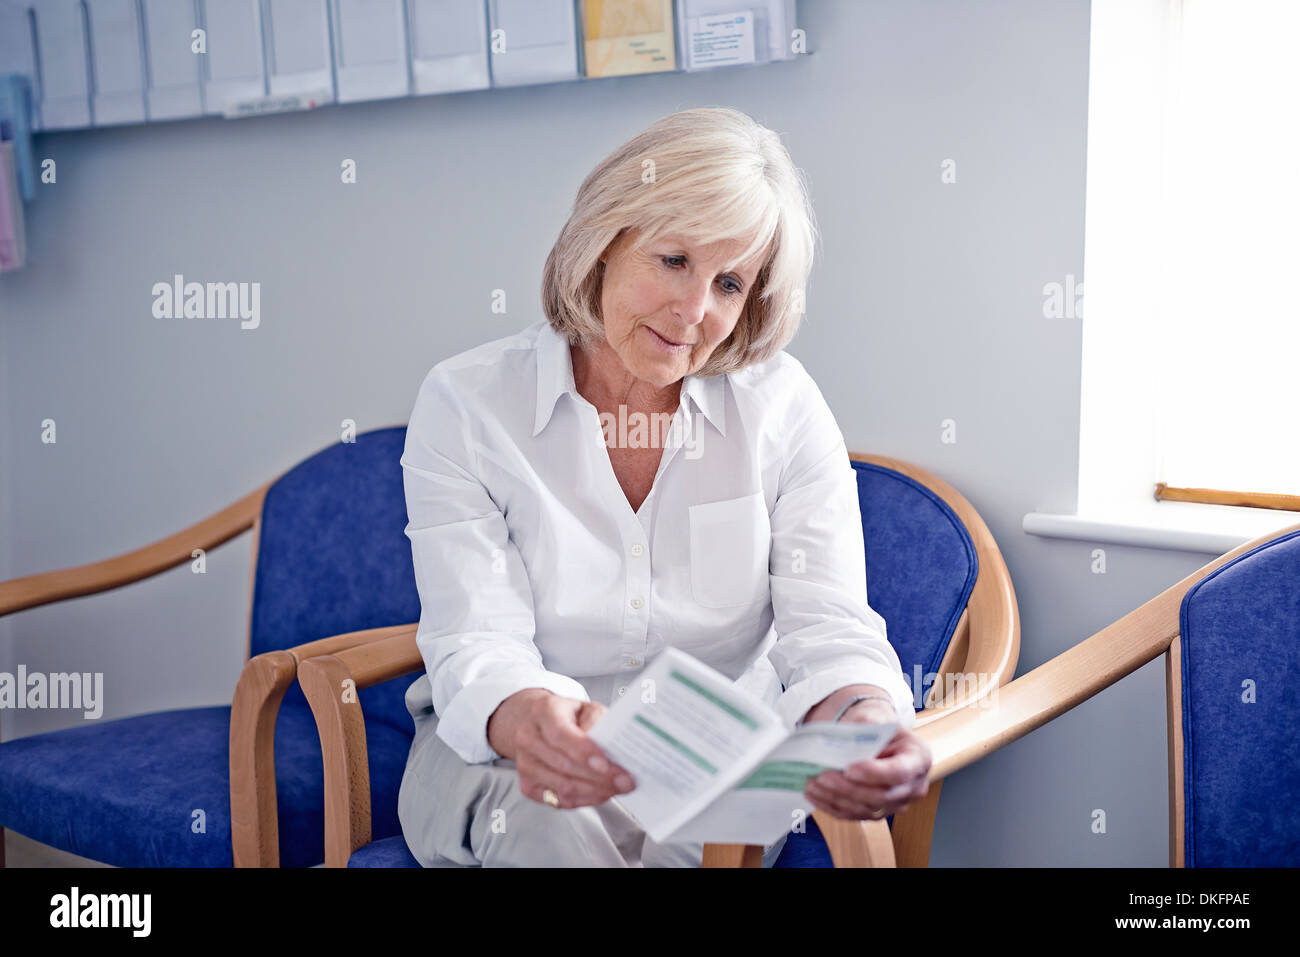 Mature female patient reading leaflet in hospital waiting room - Stock Image